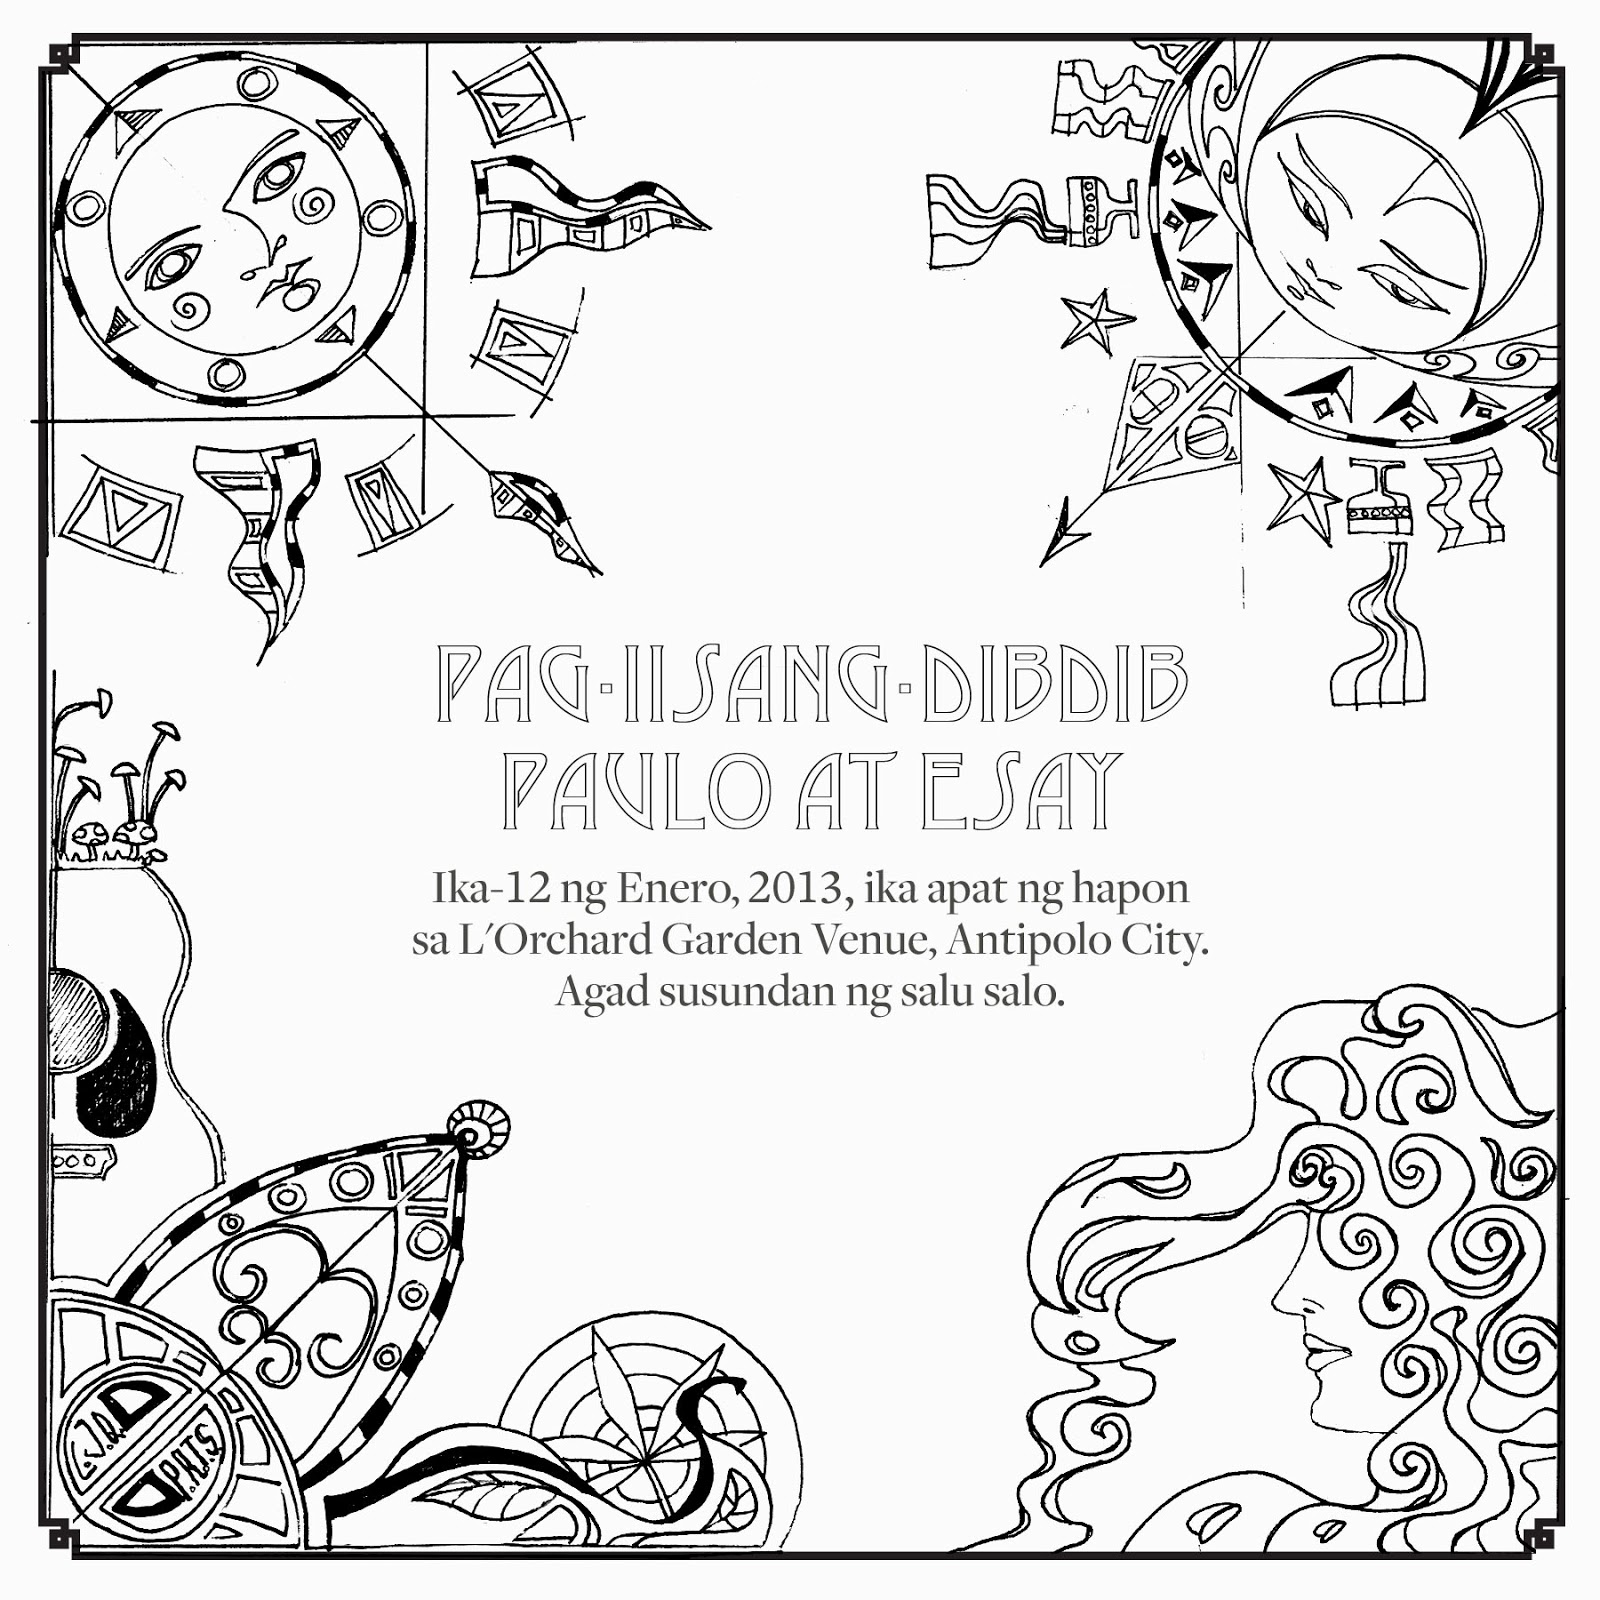 Practical pinay 2013 wedding invitation in filipino tagalog artwork by paulo subido stopboris Image collections